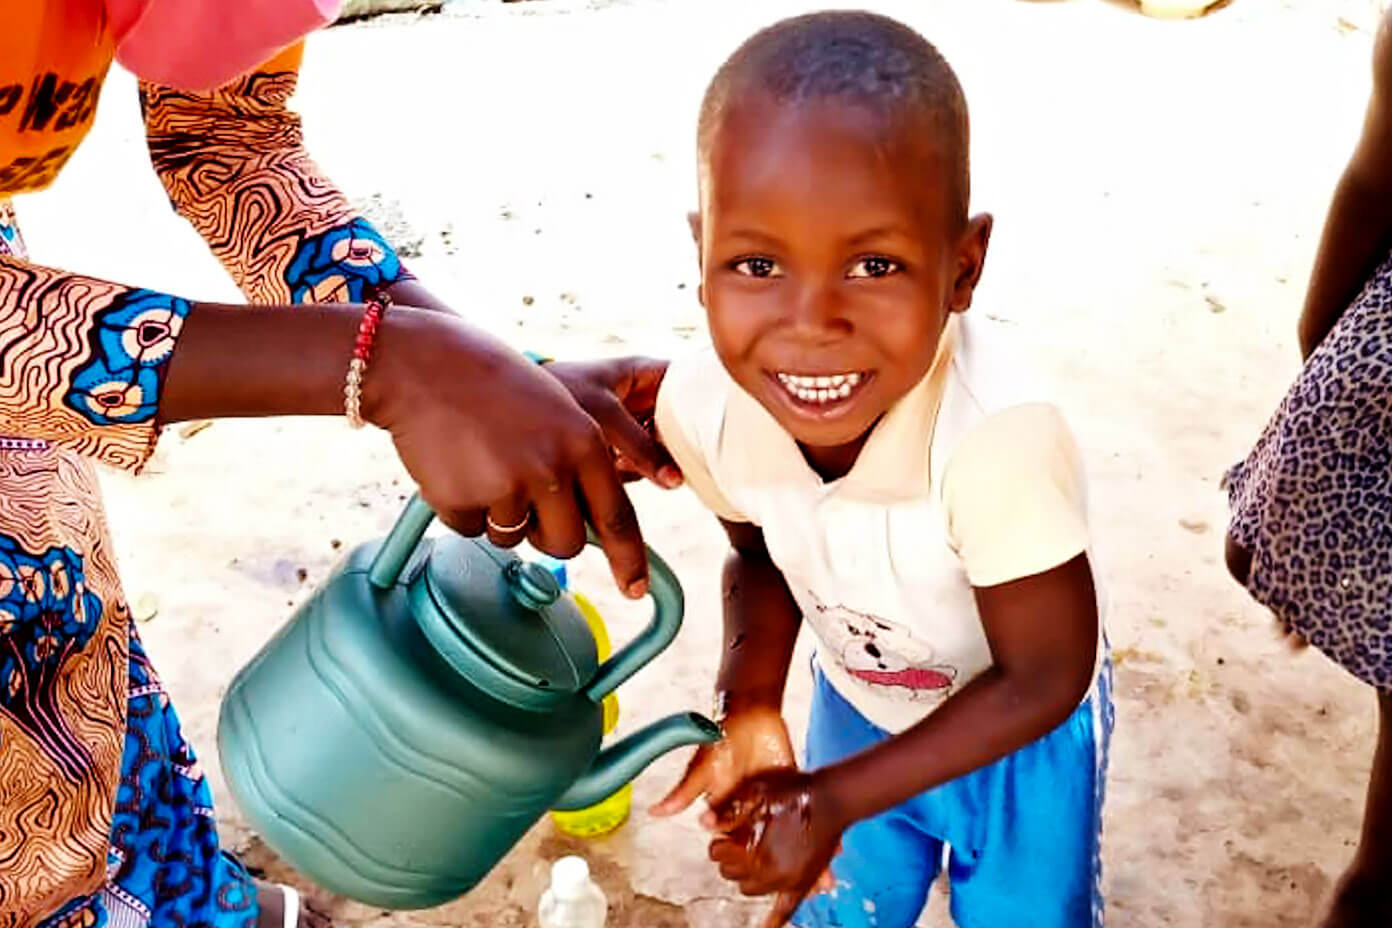 Young boy in Mali washing his hands with soap and clean water